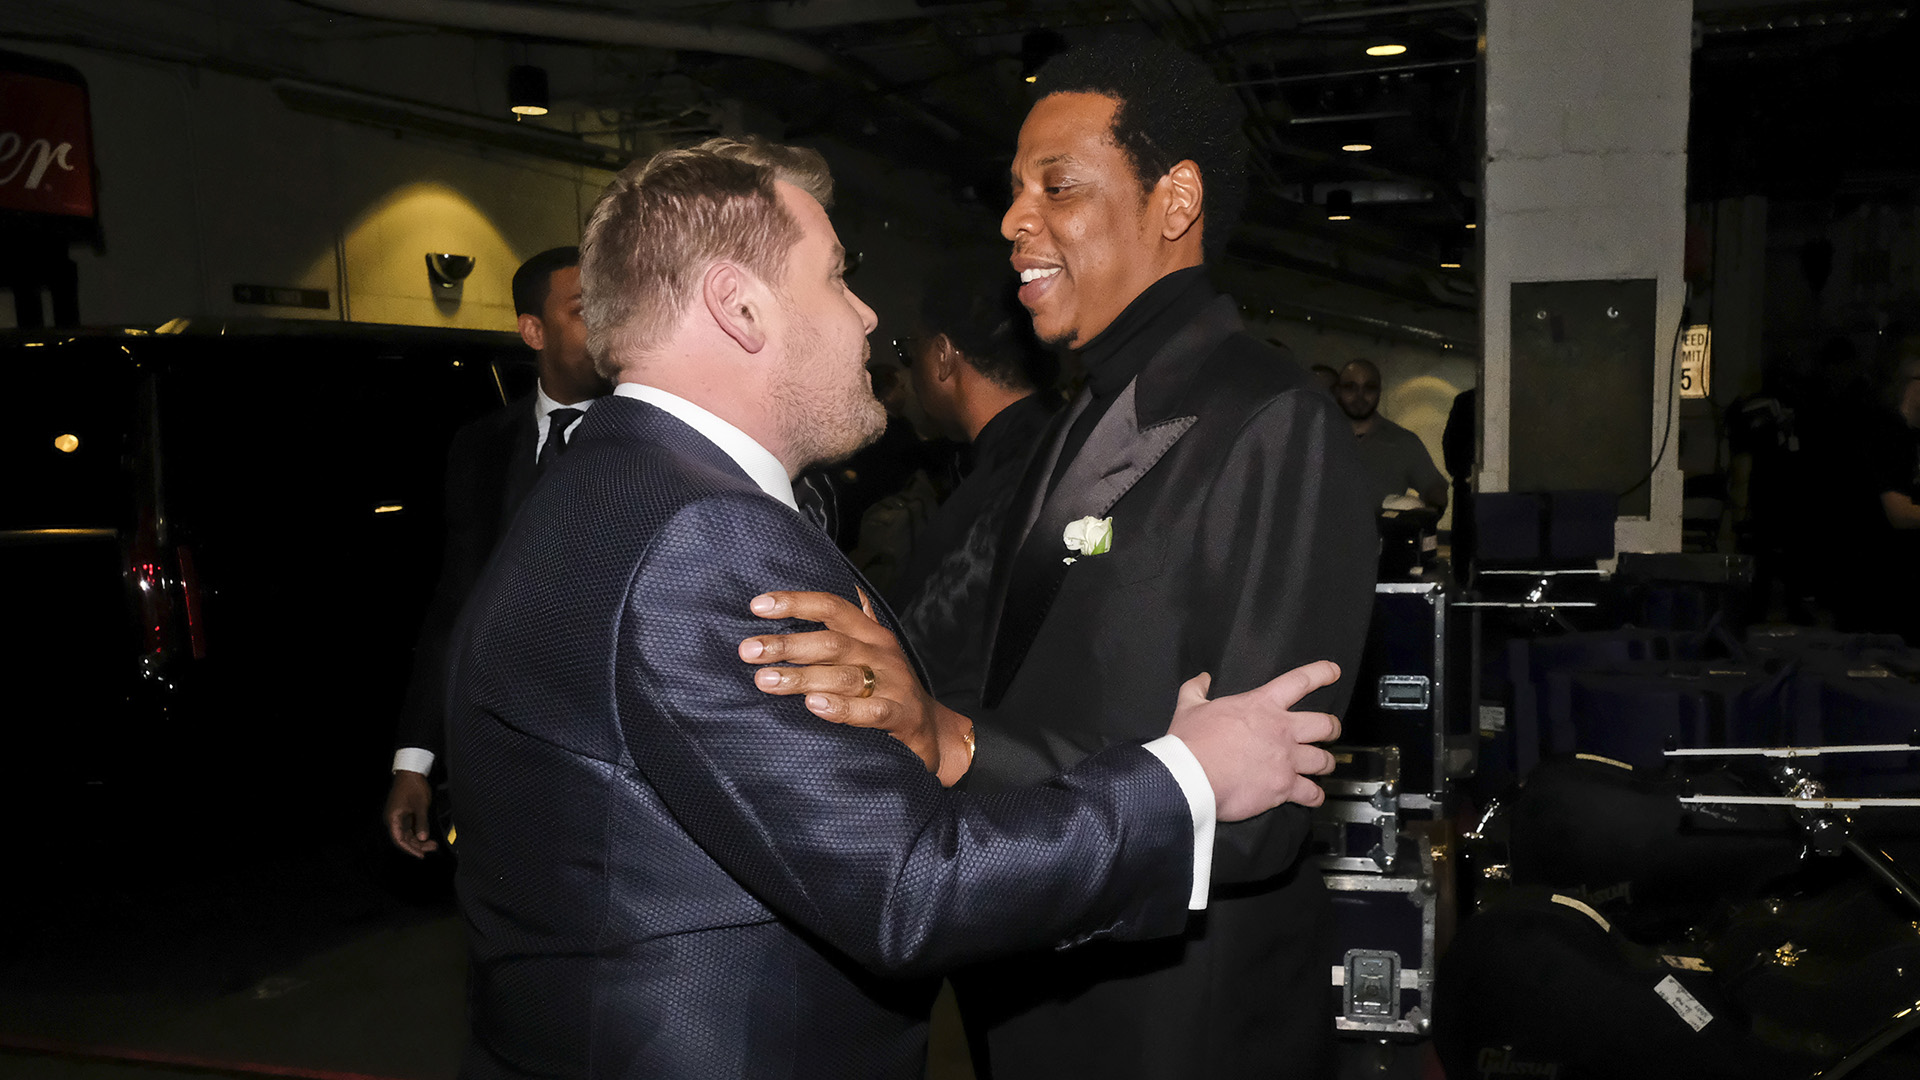 Host James Corden enjoys a moment backstage at Madison Square Garden with 2018 GRAMMY nominee and hip-hop legend JAY-Z.